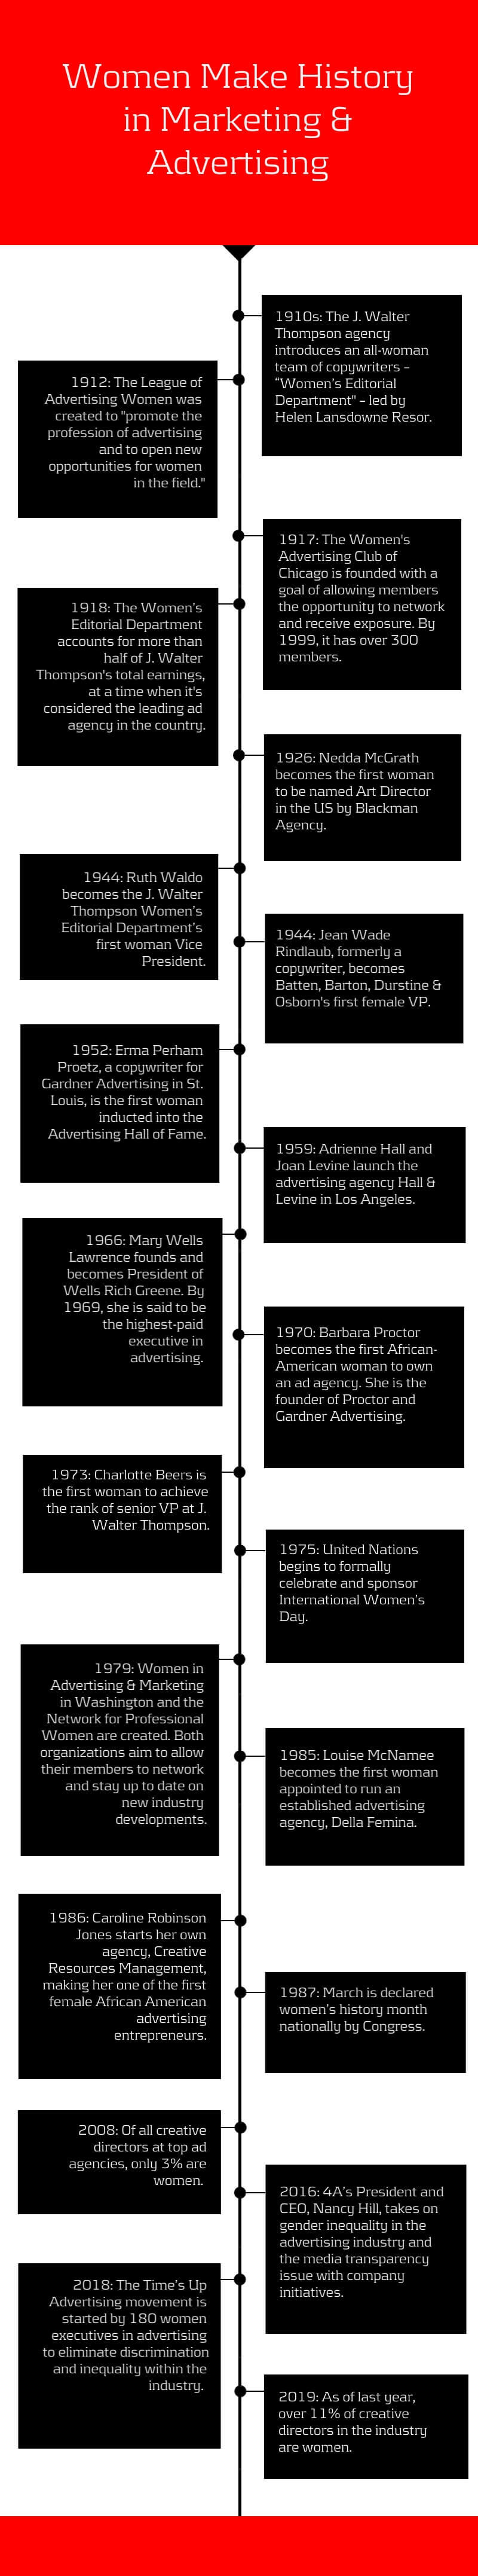 Women Make History in Marketing and Advertising